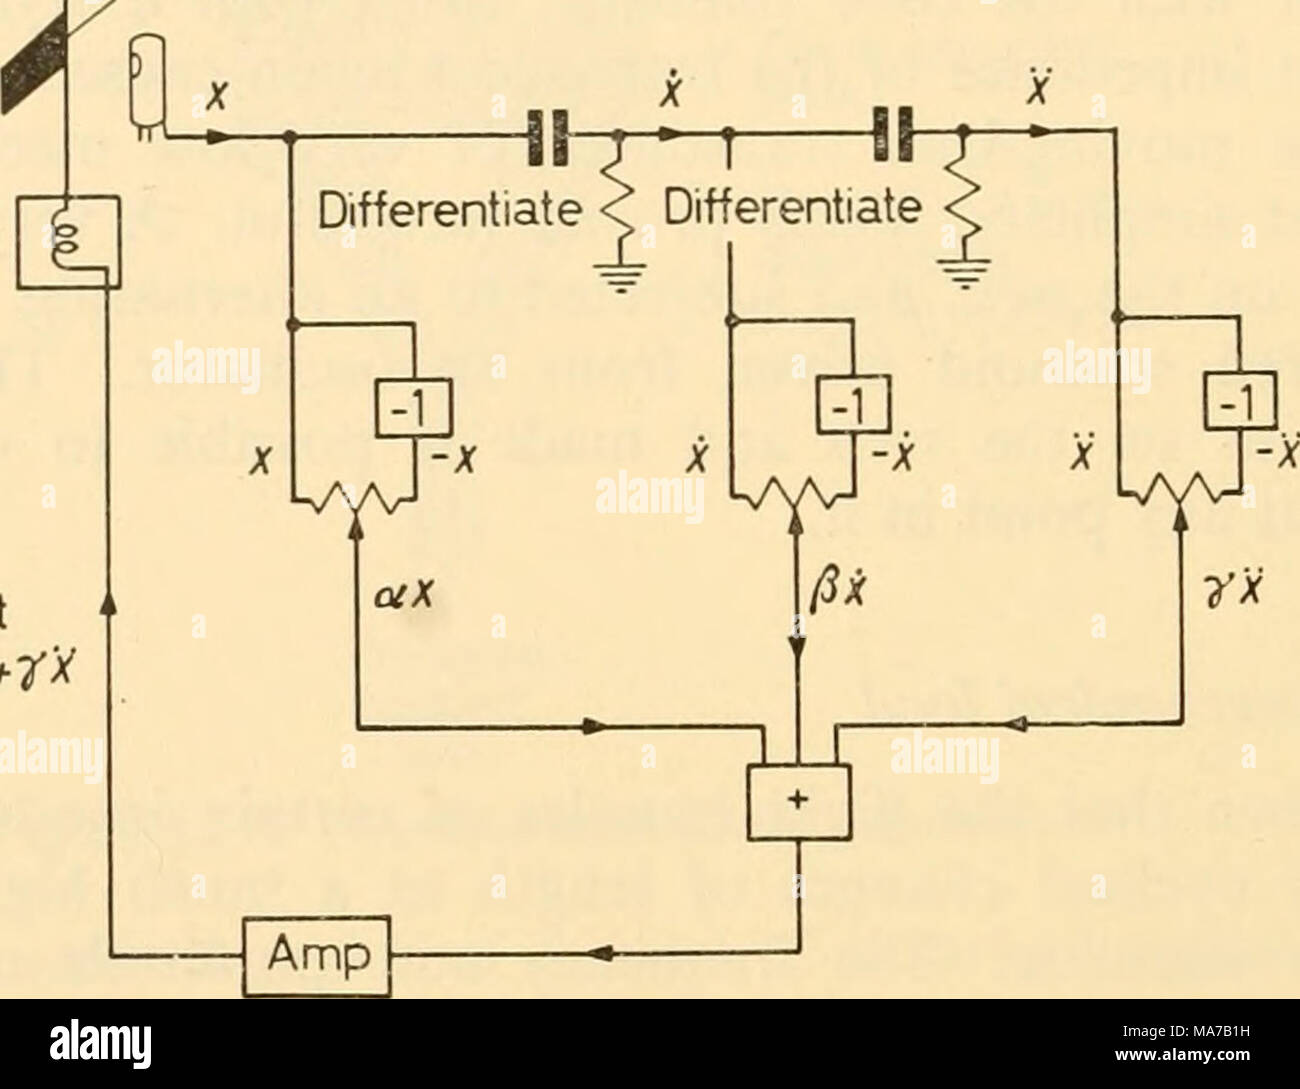 hight resolution of electronic apparatus for biological research figure 33 41 a variable mechanical load block diagram